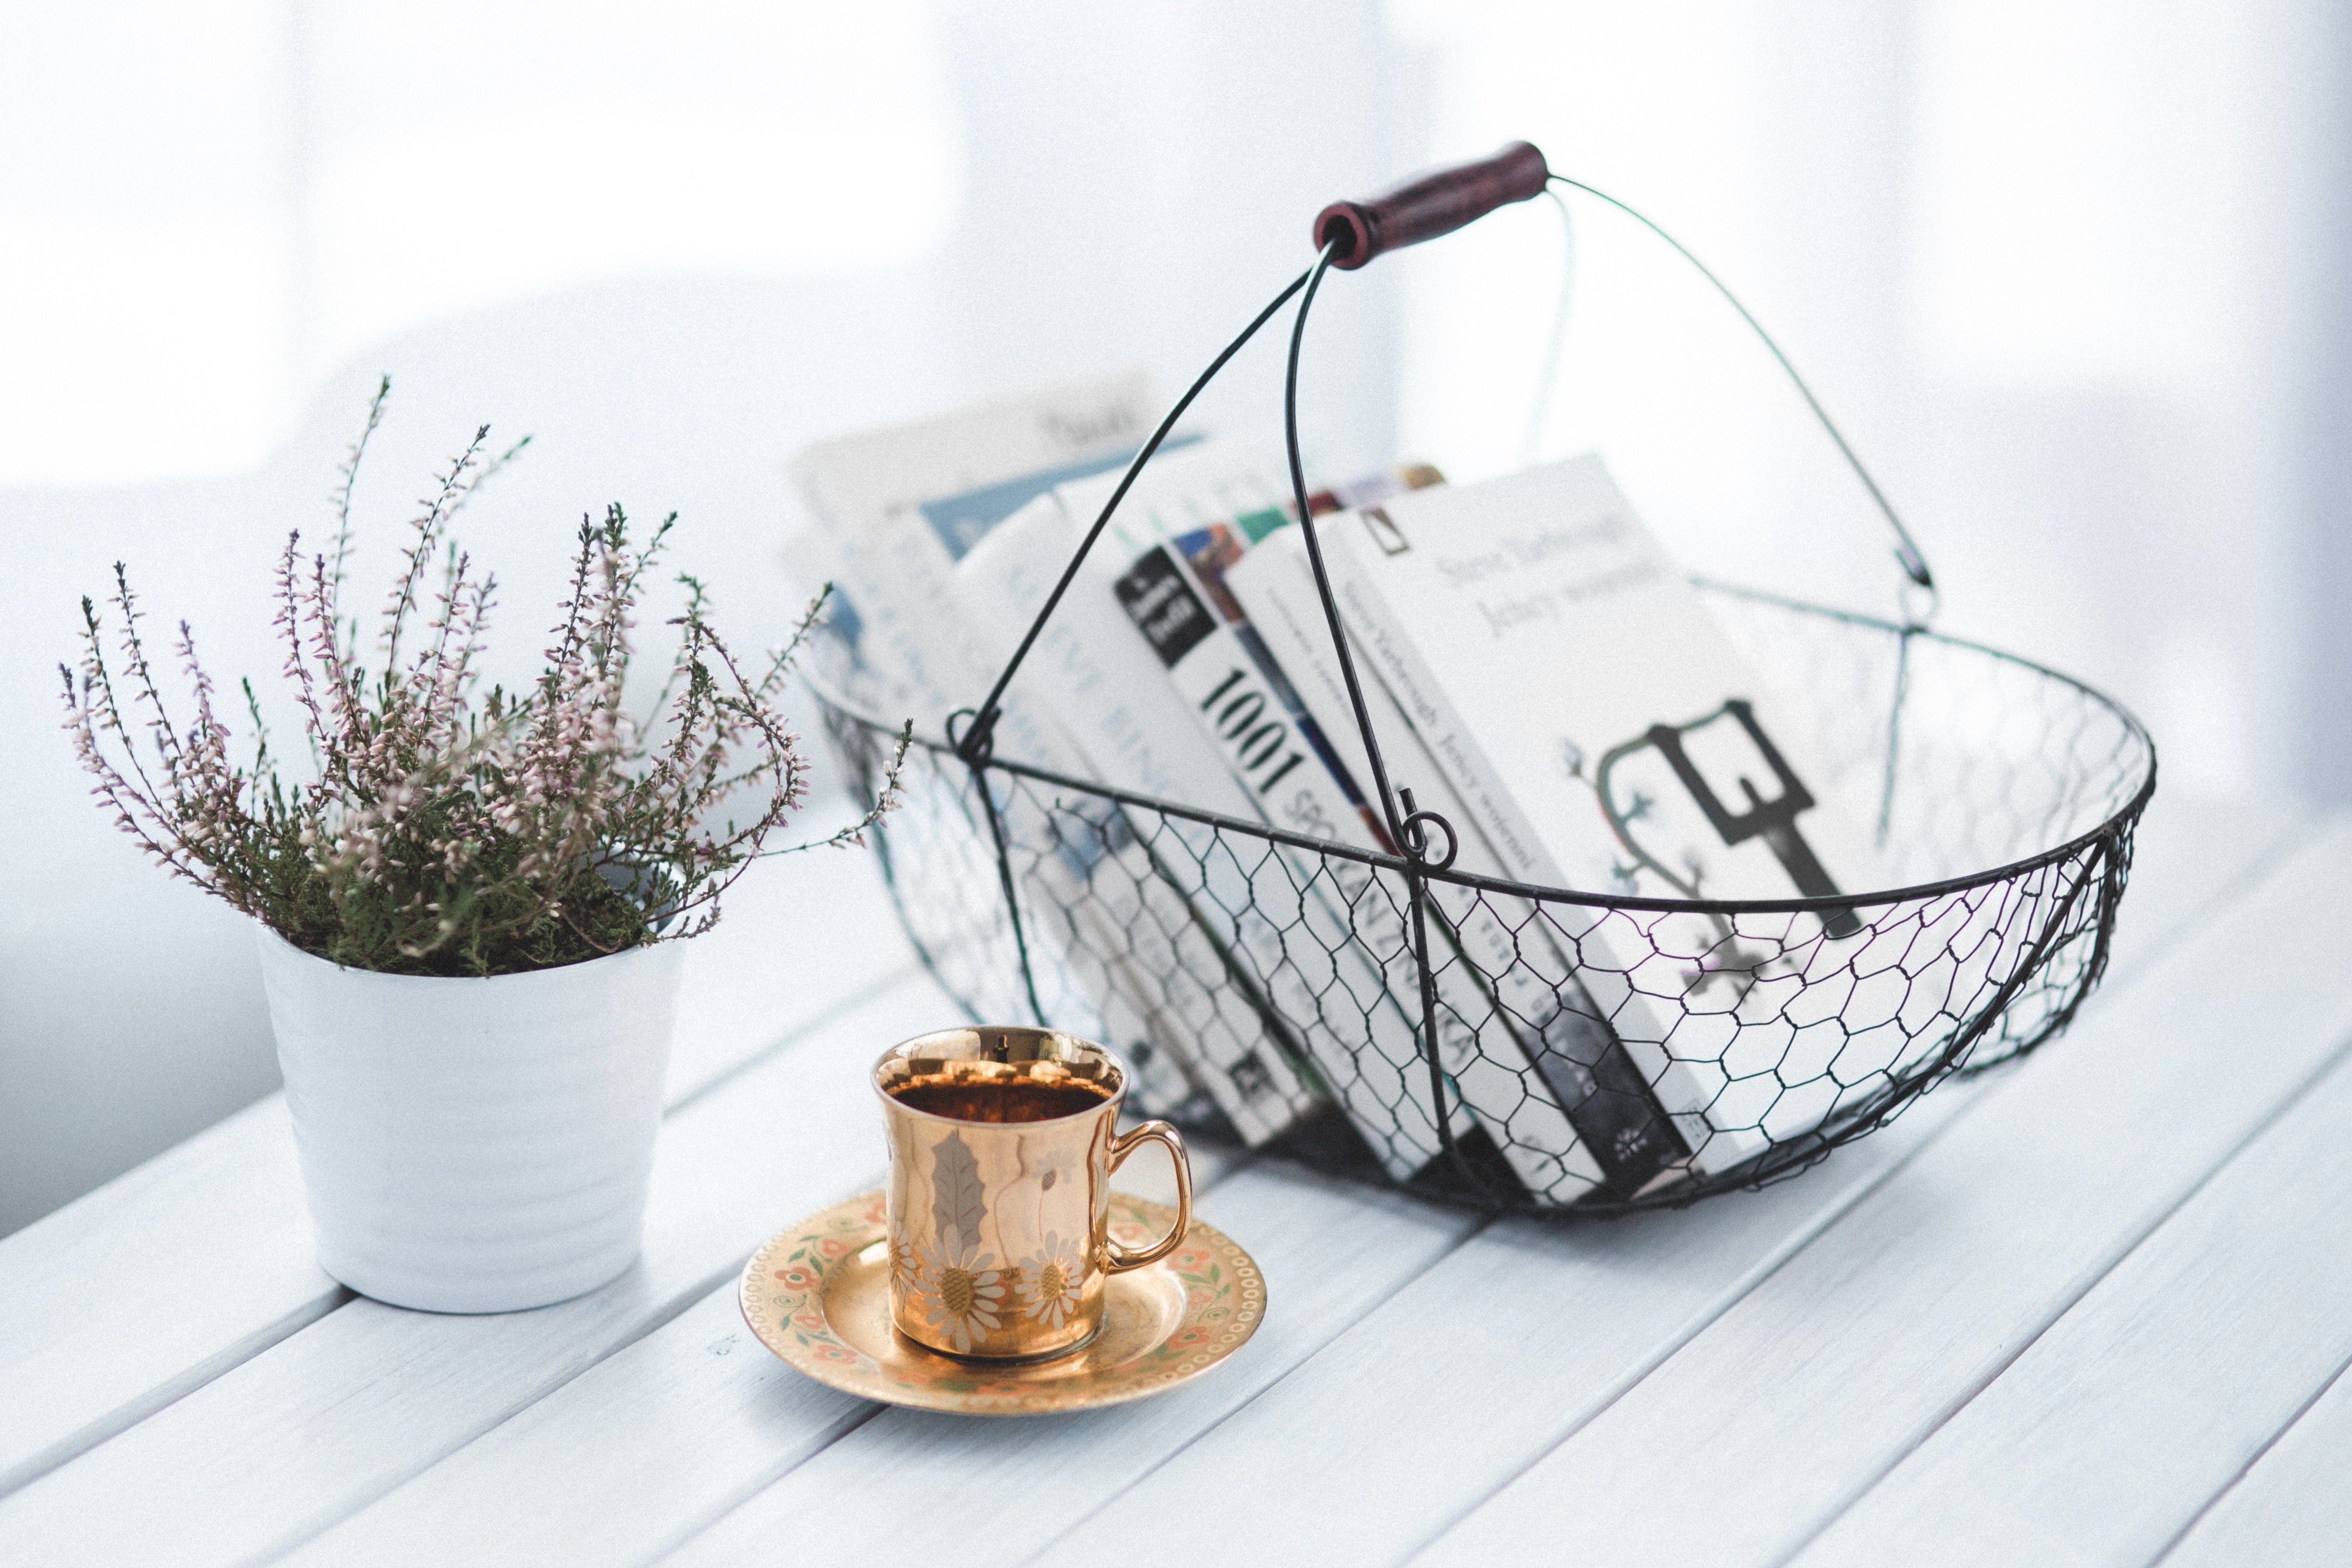 Golden cup and basket with books, Home, Wood, Wealth, Tea, HQ Photo